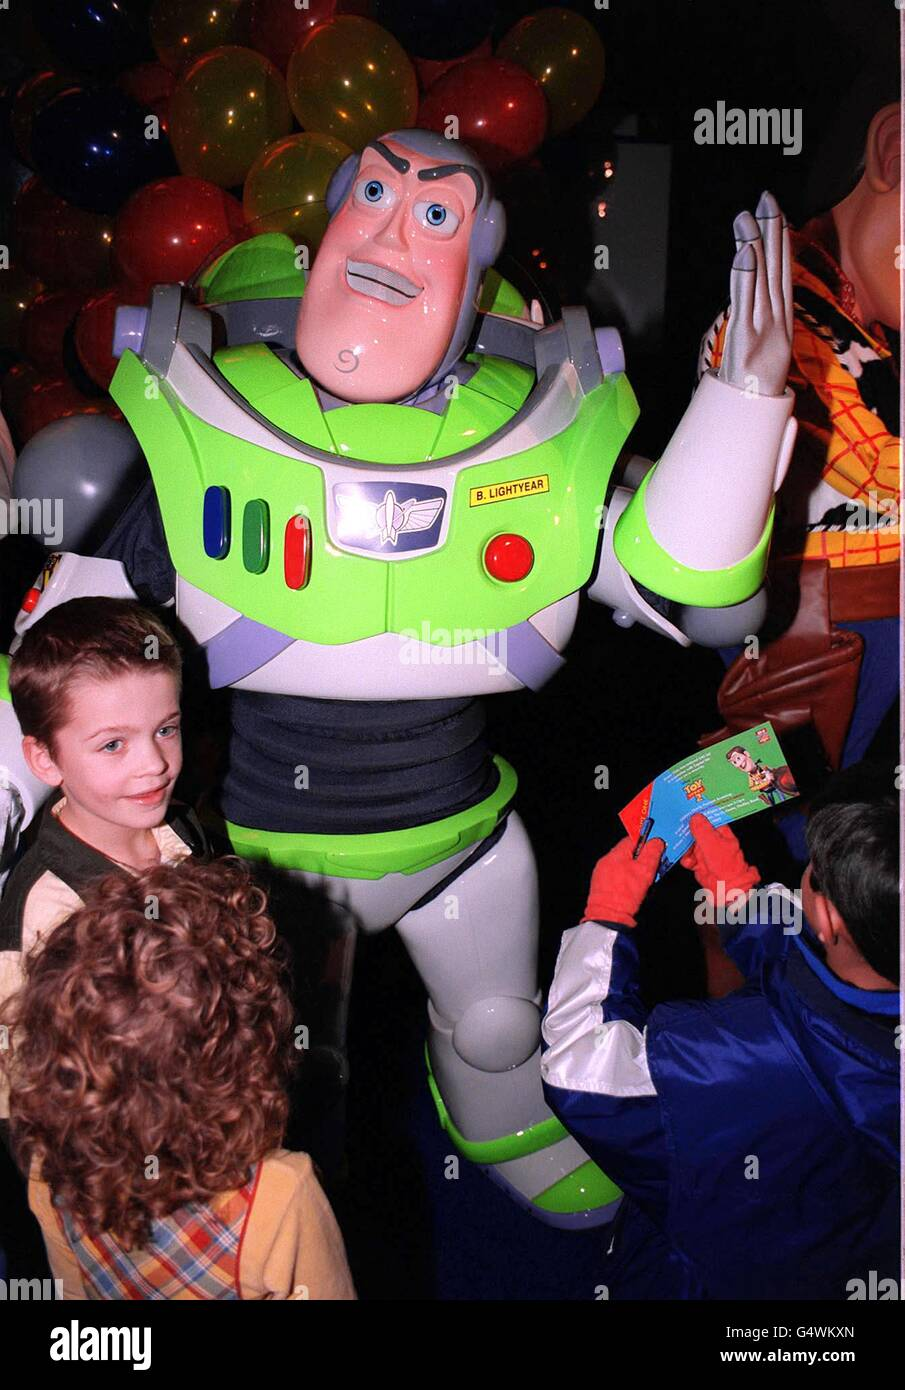 Toy Story 2 Premiere Lightyear - Stock Image